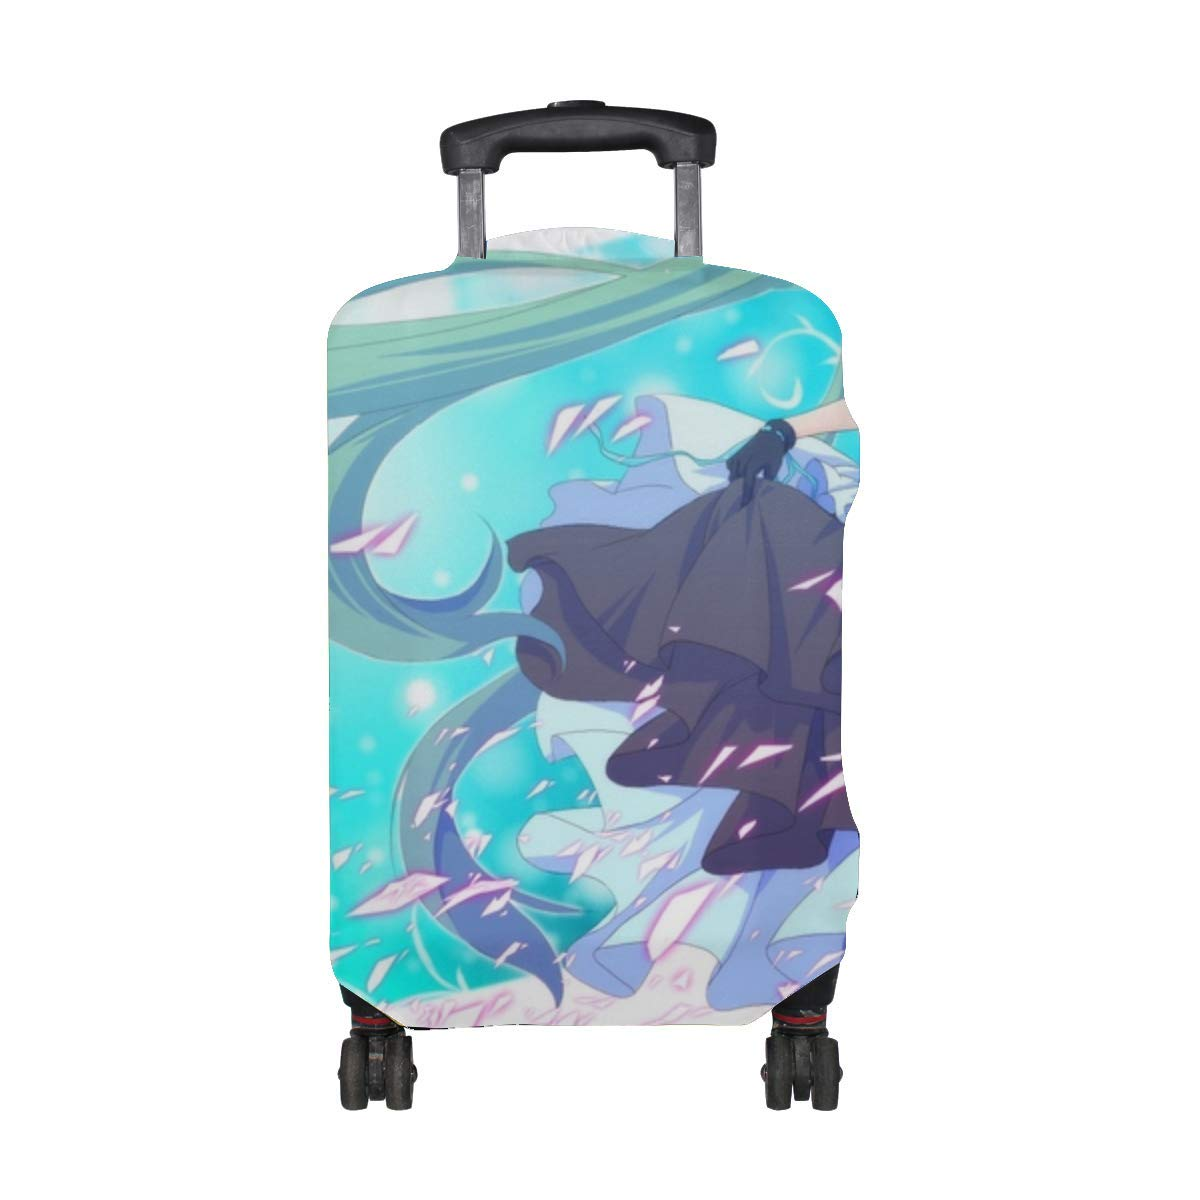 Maxm Vocaloid Hatsune Miku Kiko Girl Wind Dress Stockings Pattern Print Travel Luggage Protector Baggage Suitcase Cover Fits 18-21 Inch Luggage